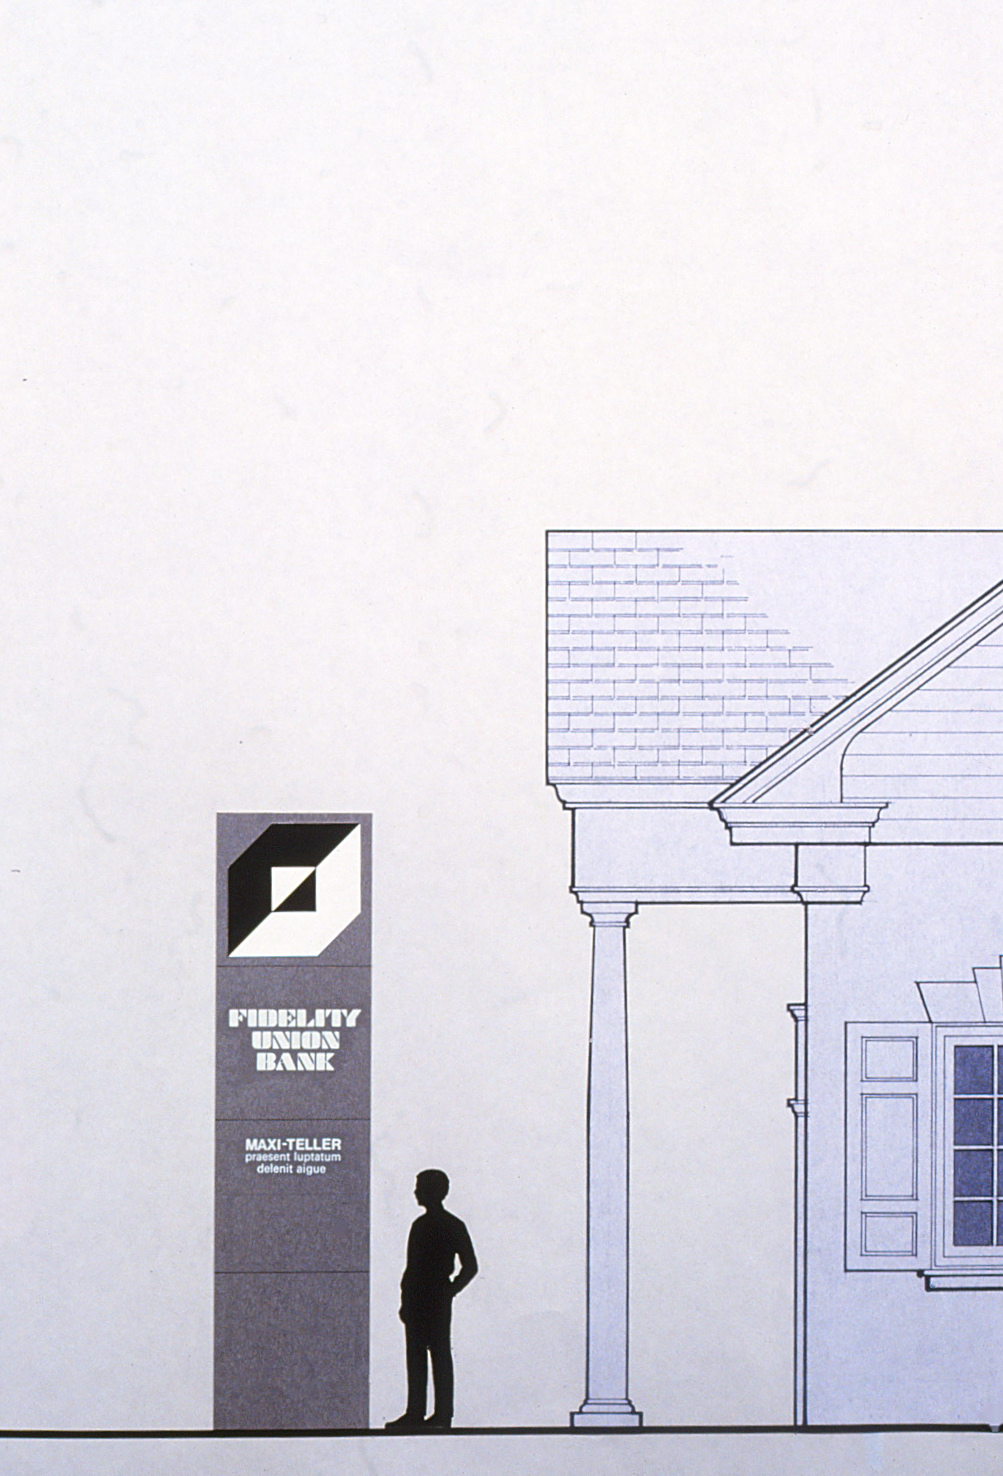 Elevation drawing featuring a pylon with logo and typface beside a typical bank branch structure with columns.